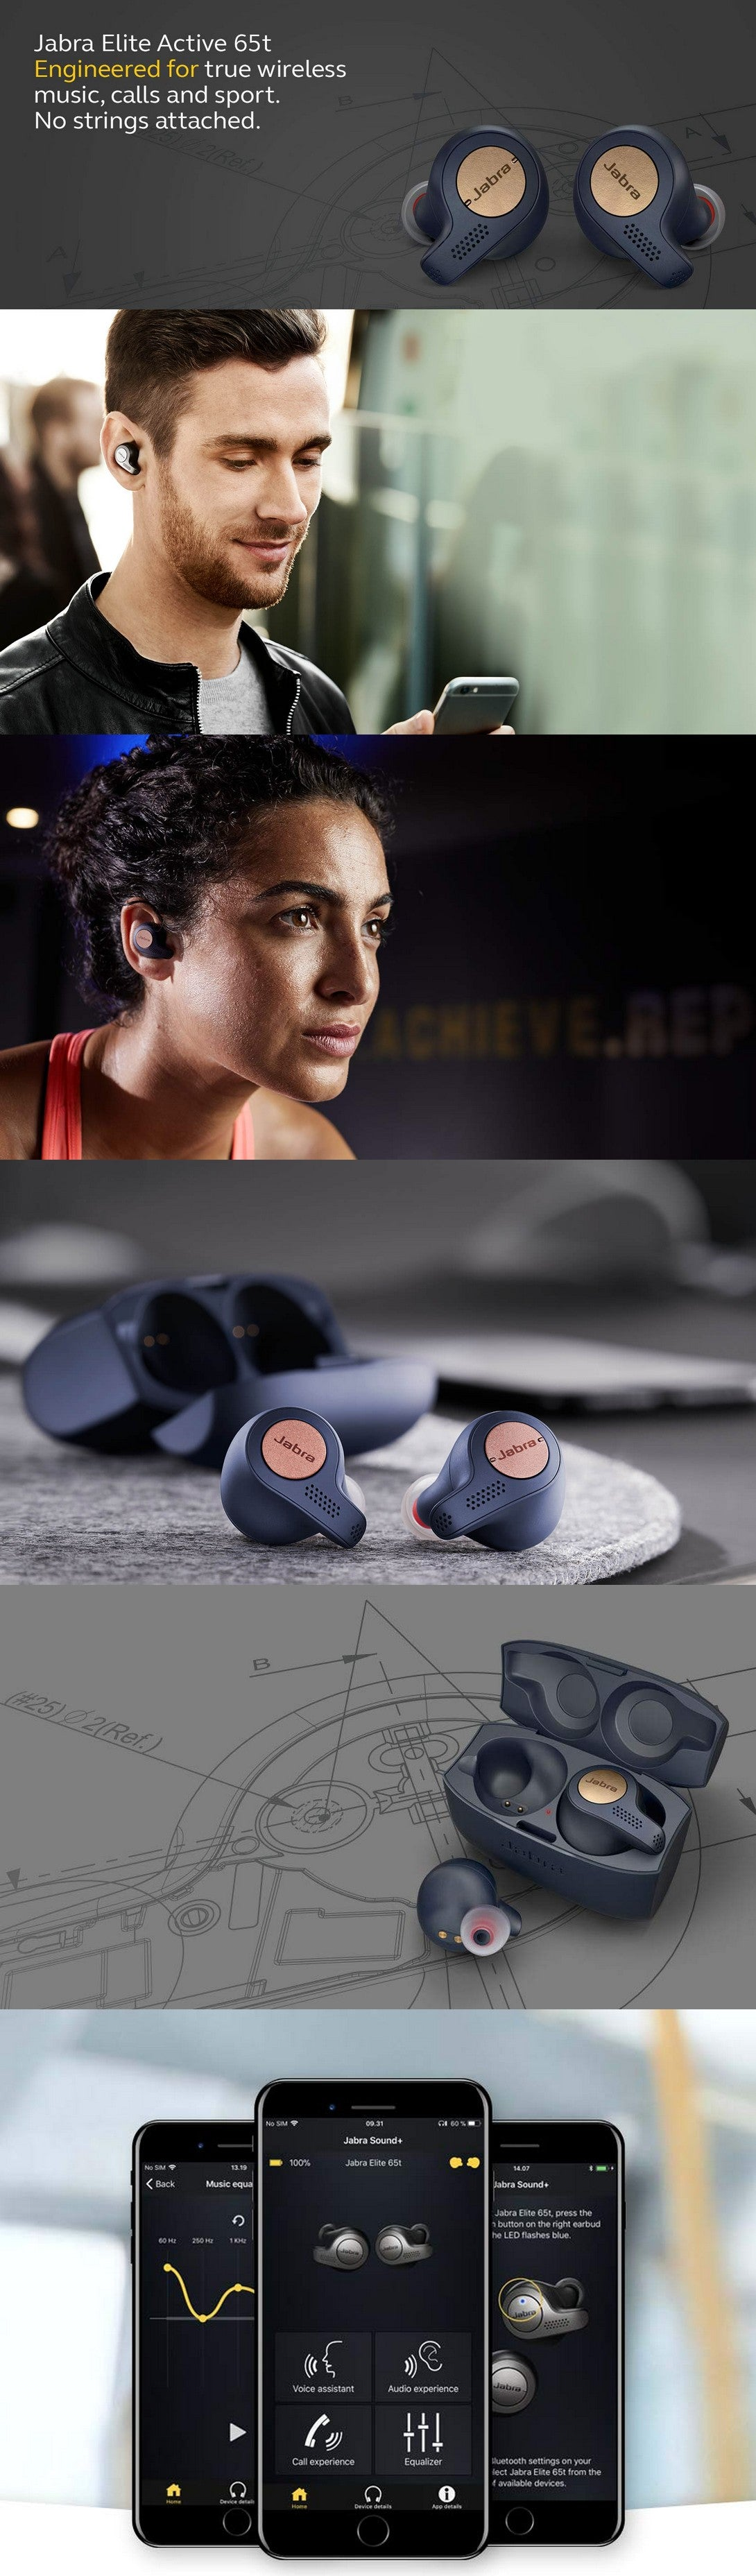 Jabra Elite Active 65t 真無線 防水 藍牙耳機|免費送貨|anlander.com